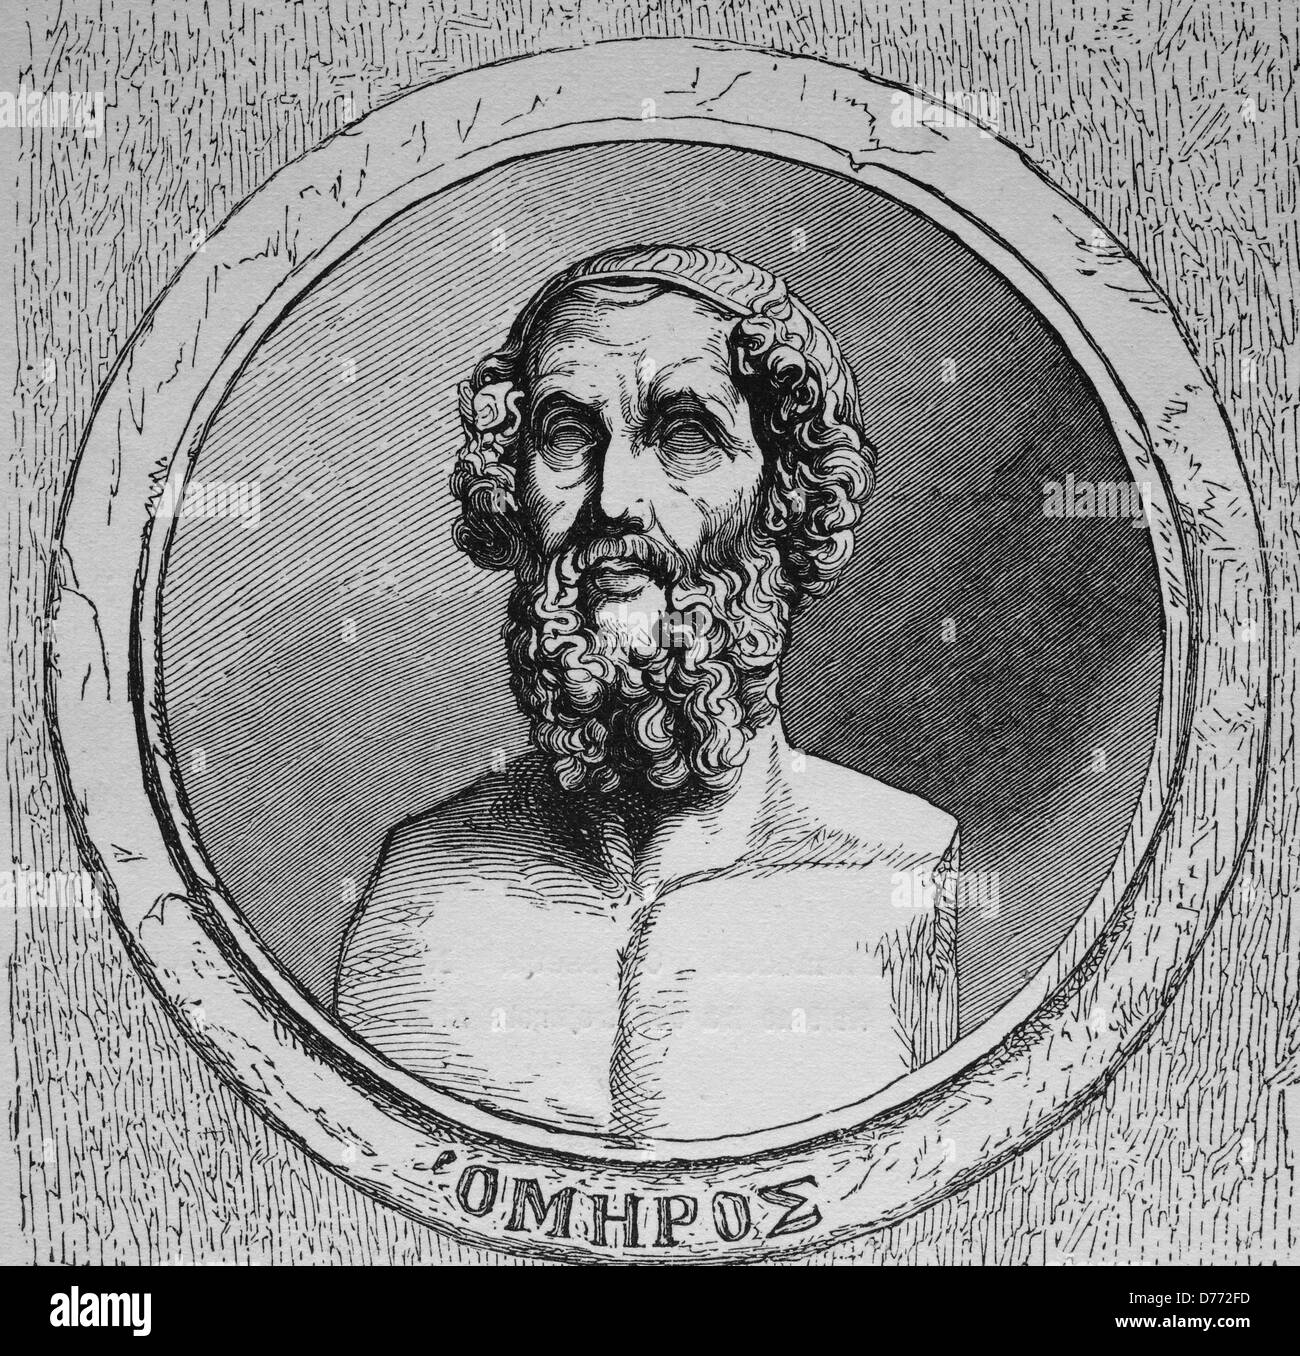 Homer, author of the Iliad and the Odyssey, considered to be the first poet of the occident, woodcut from 1880 - Stock Image